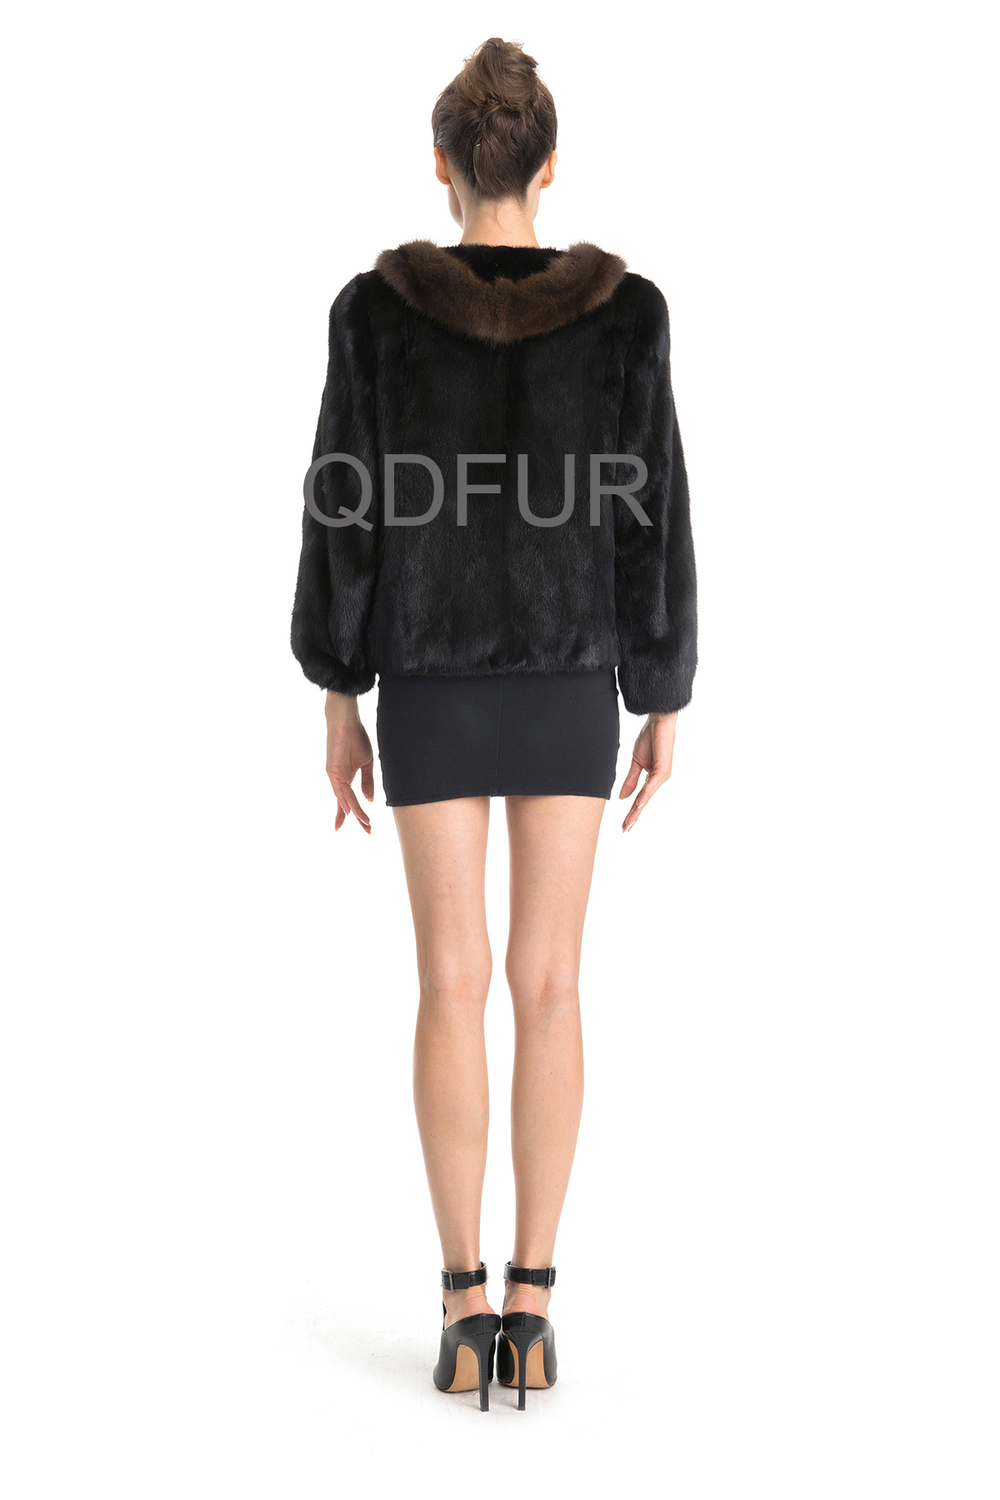 QD70713 Extreme Womans Velvet Black Mink Fur Winter Jackets 2014